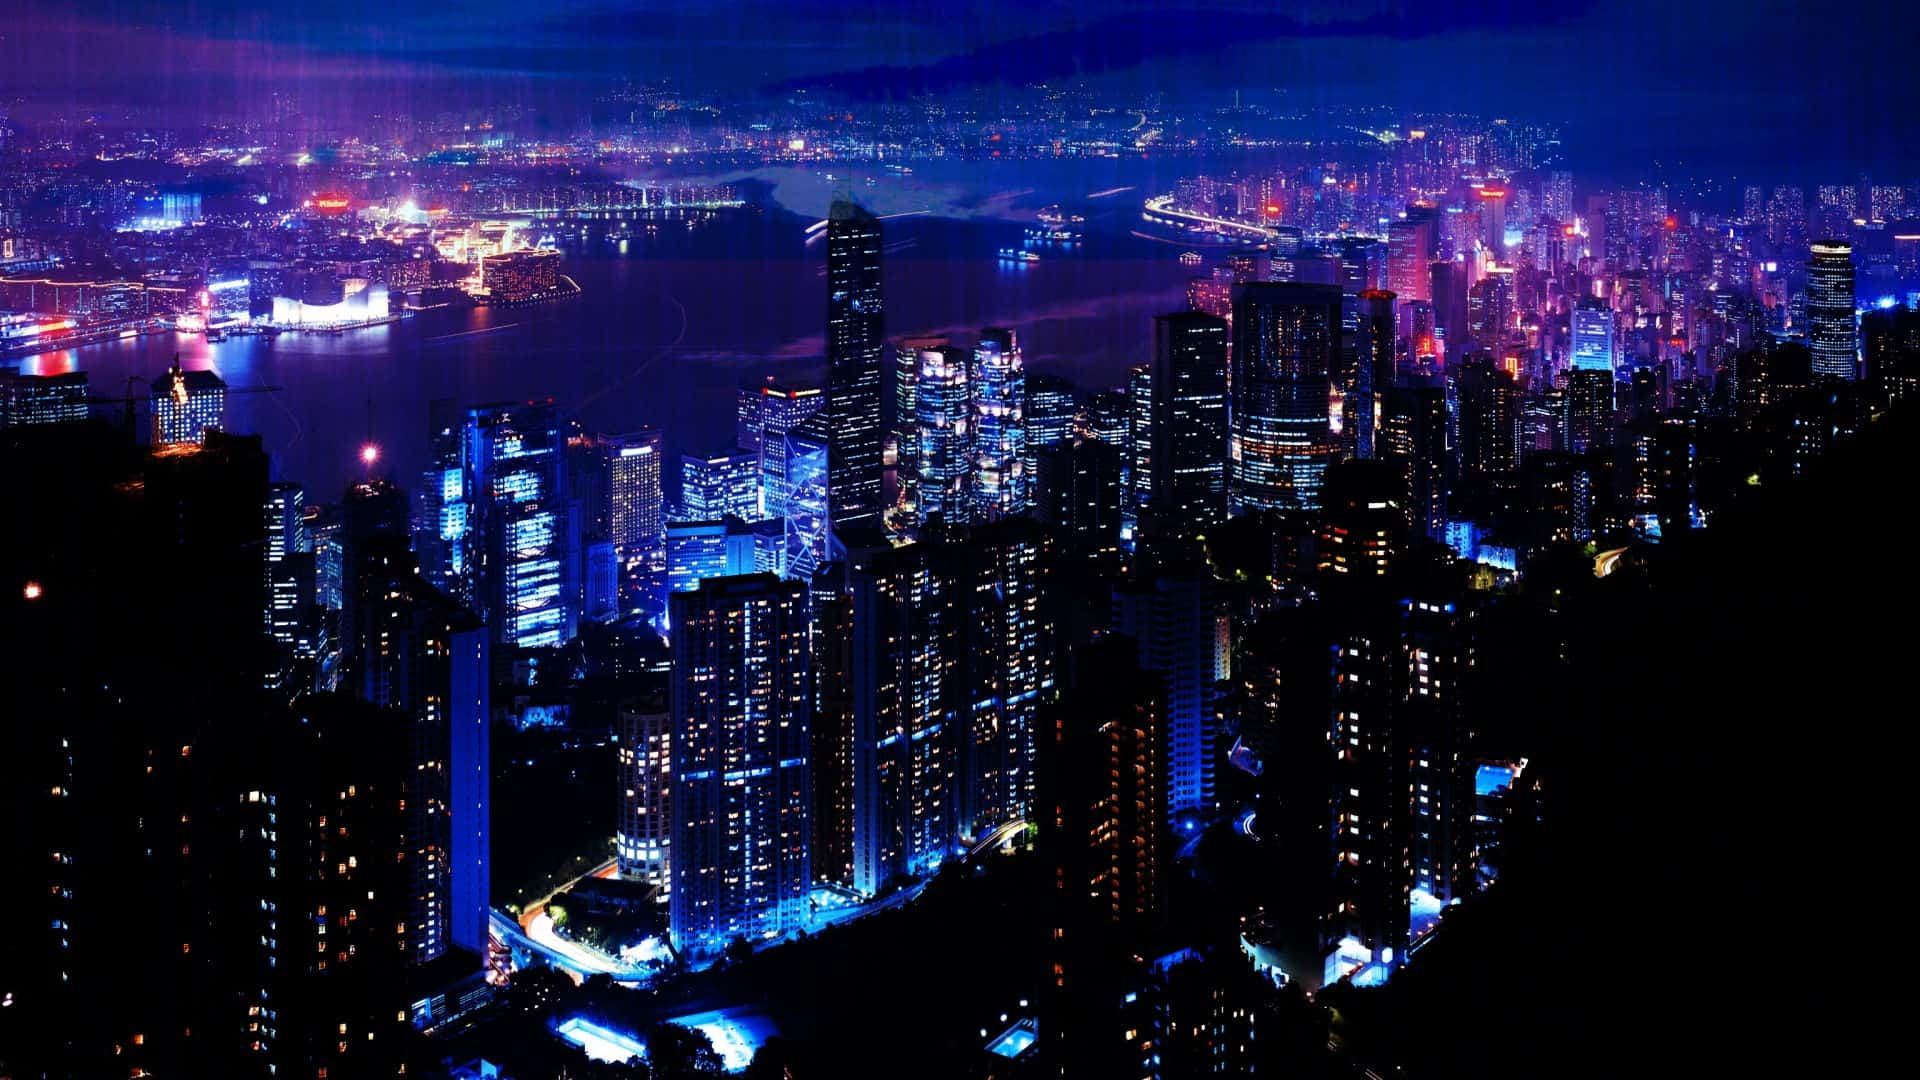 Night City Wallpaper